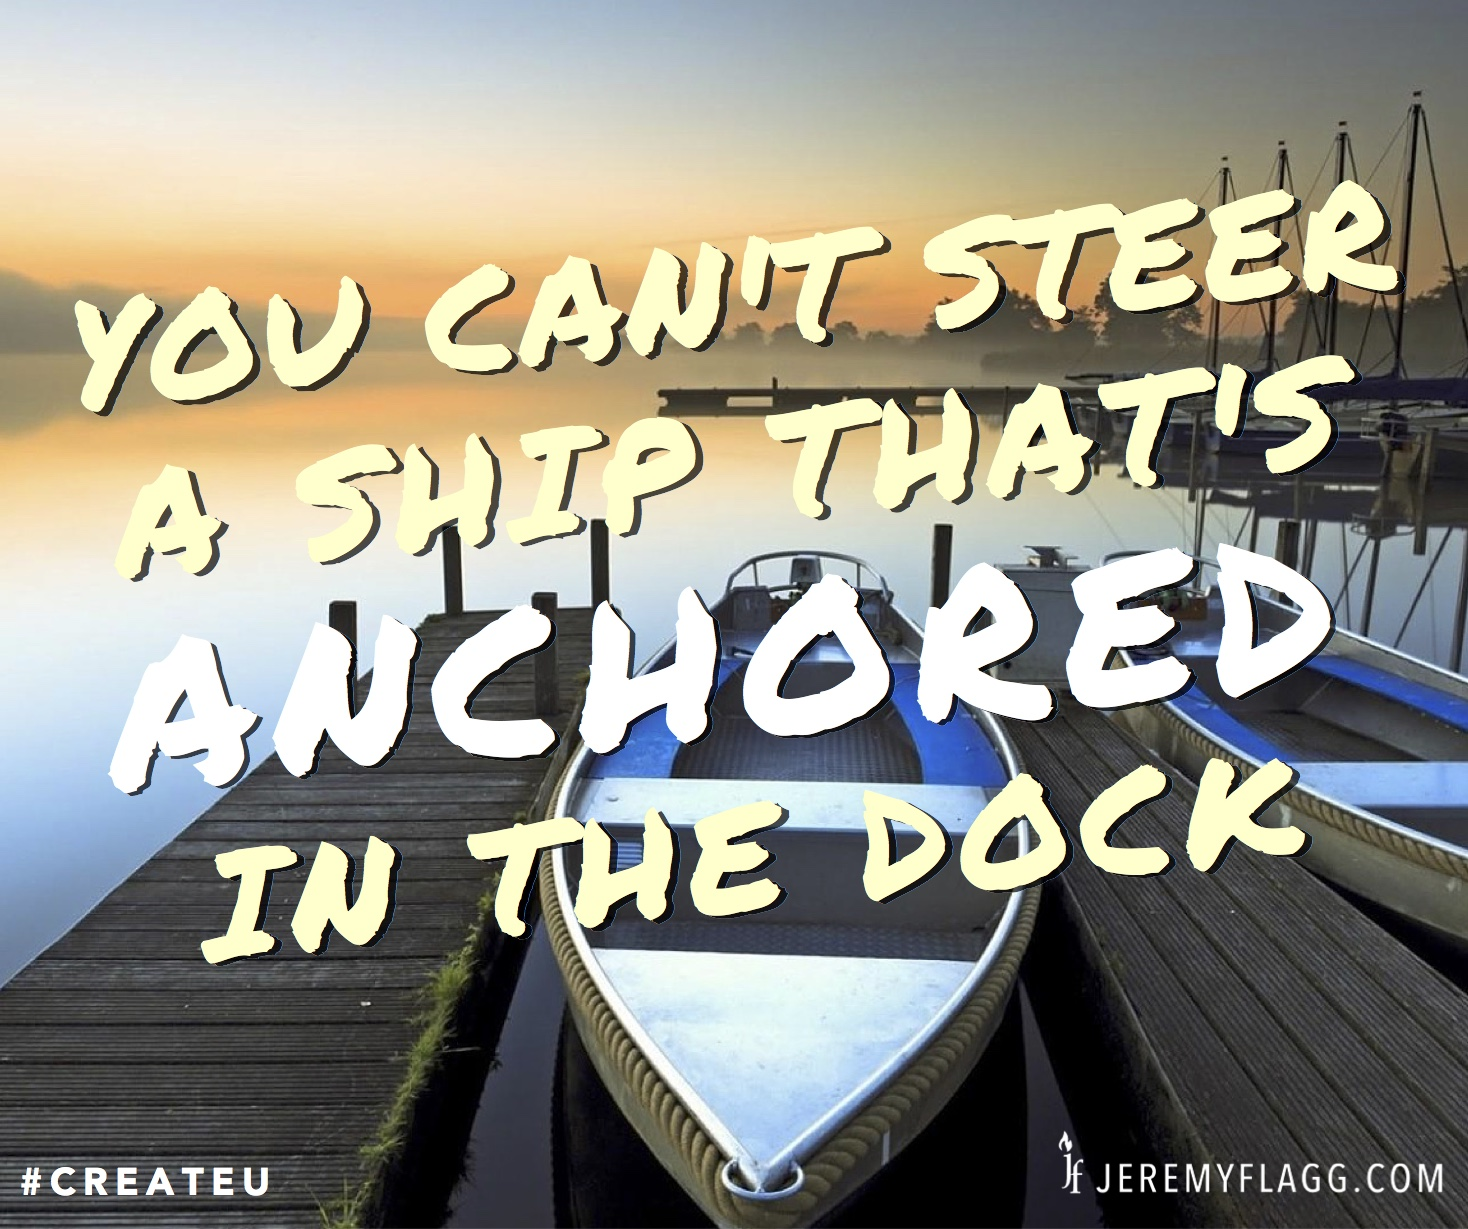 You-cant-steer-ship-anchored-dock-Jeremy-Flagg-quote-FB